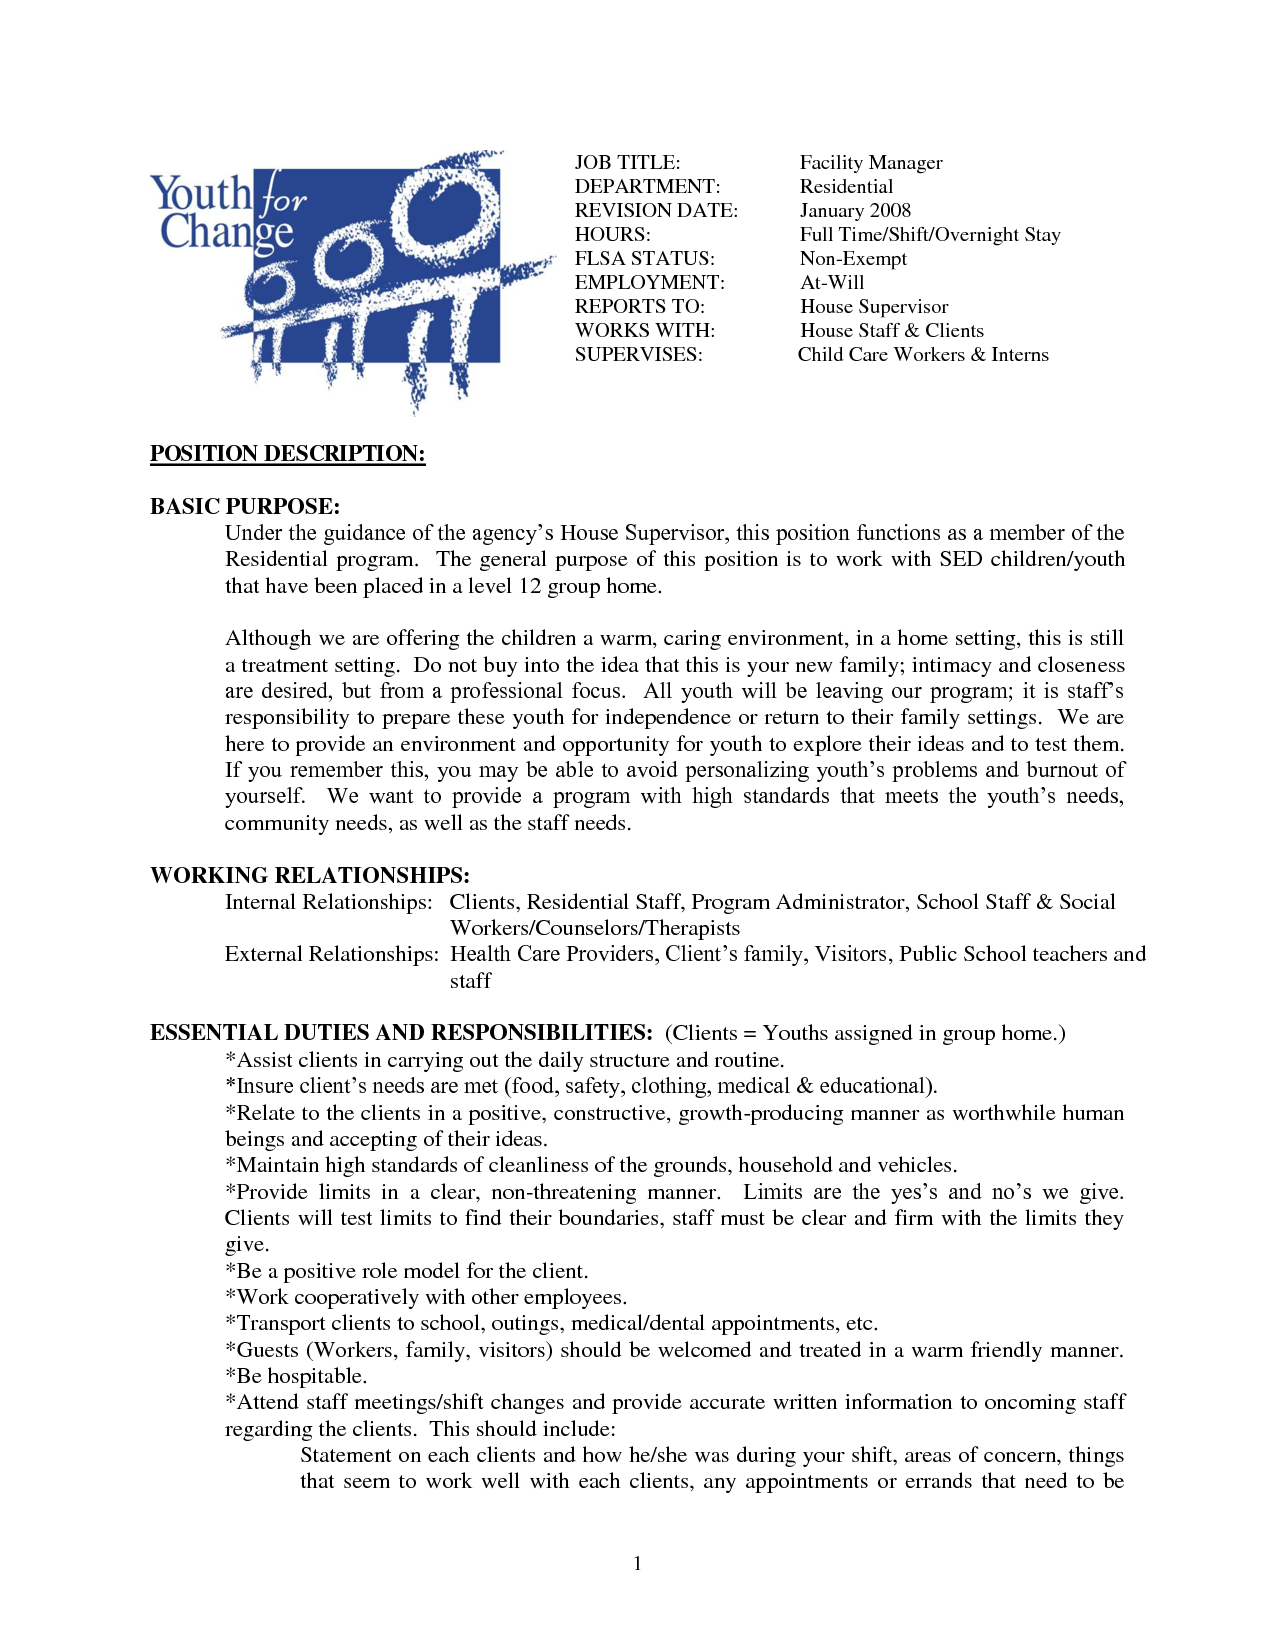 Cleaning Business Resume And Job Description House Cleraing For